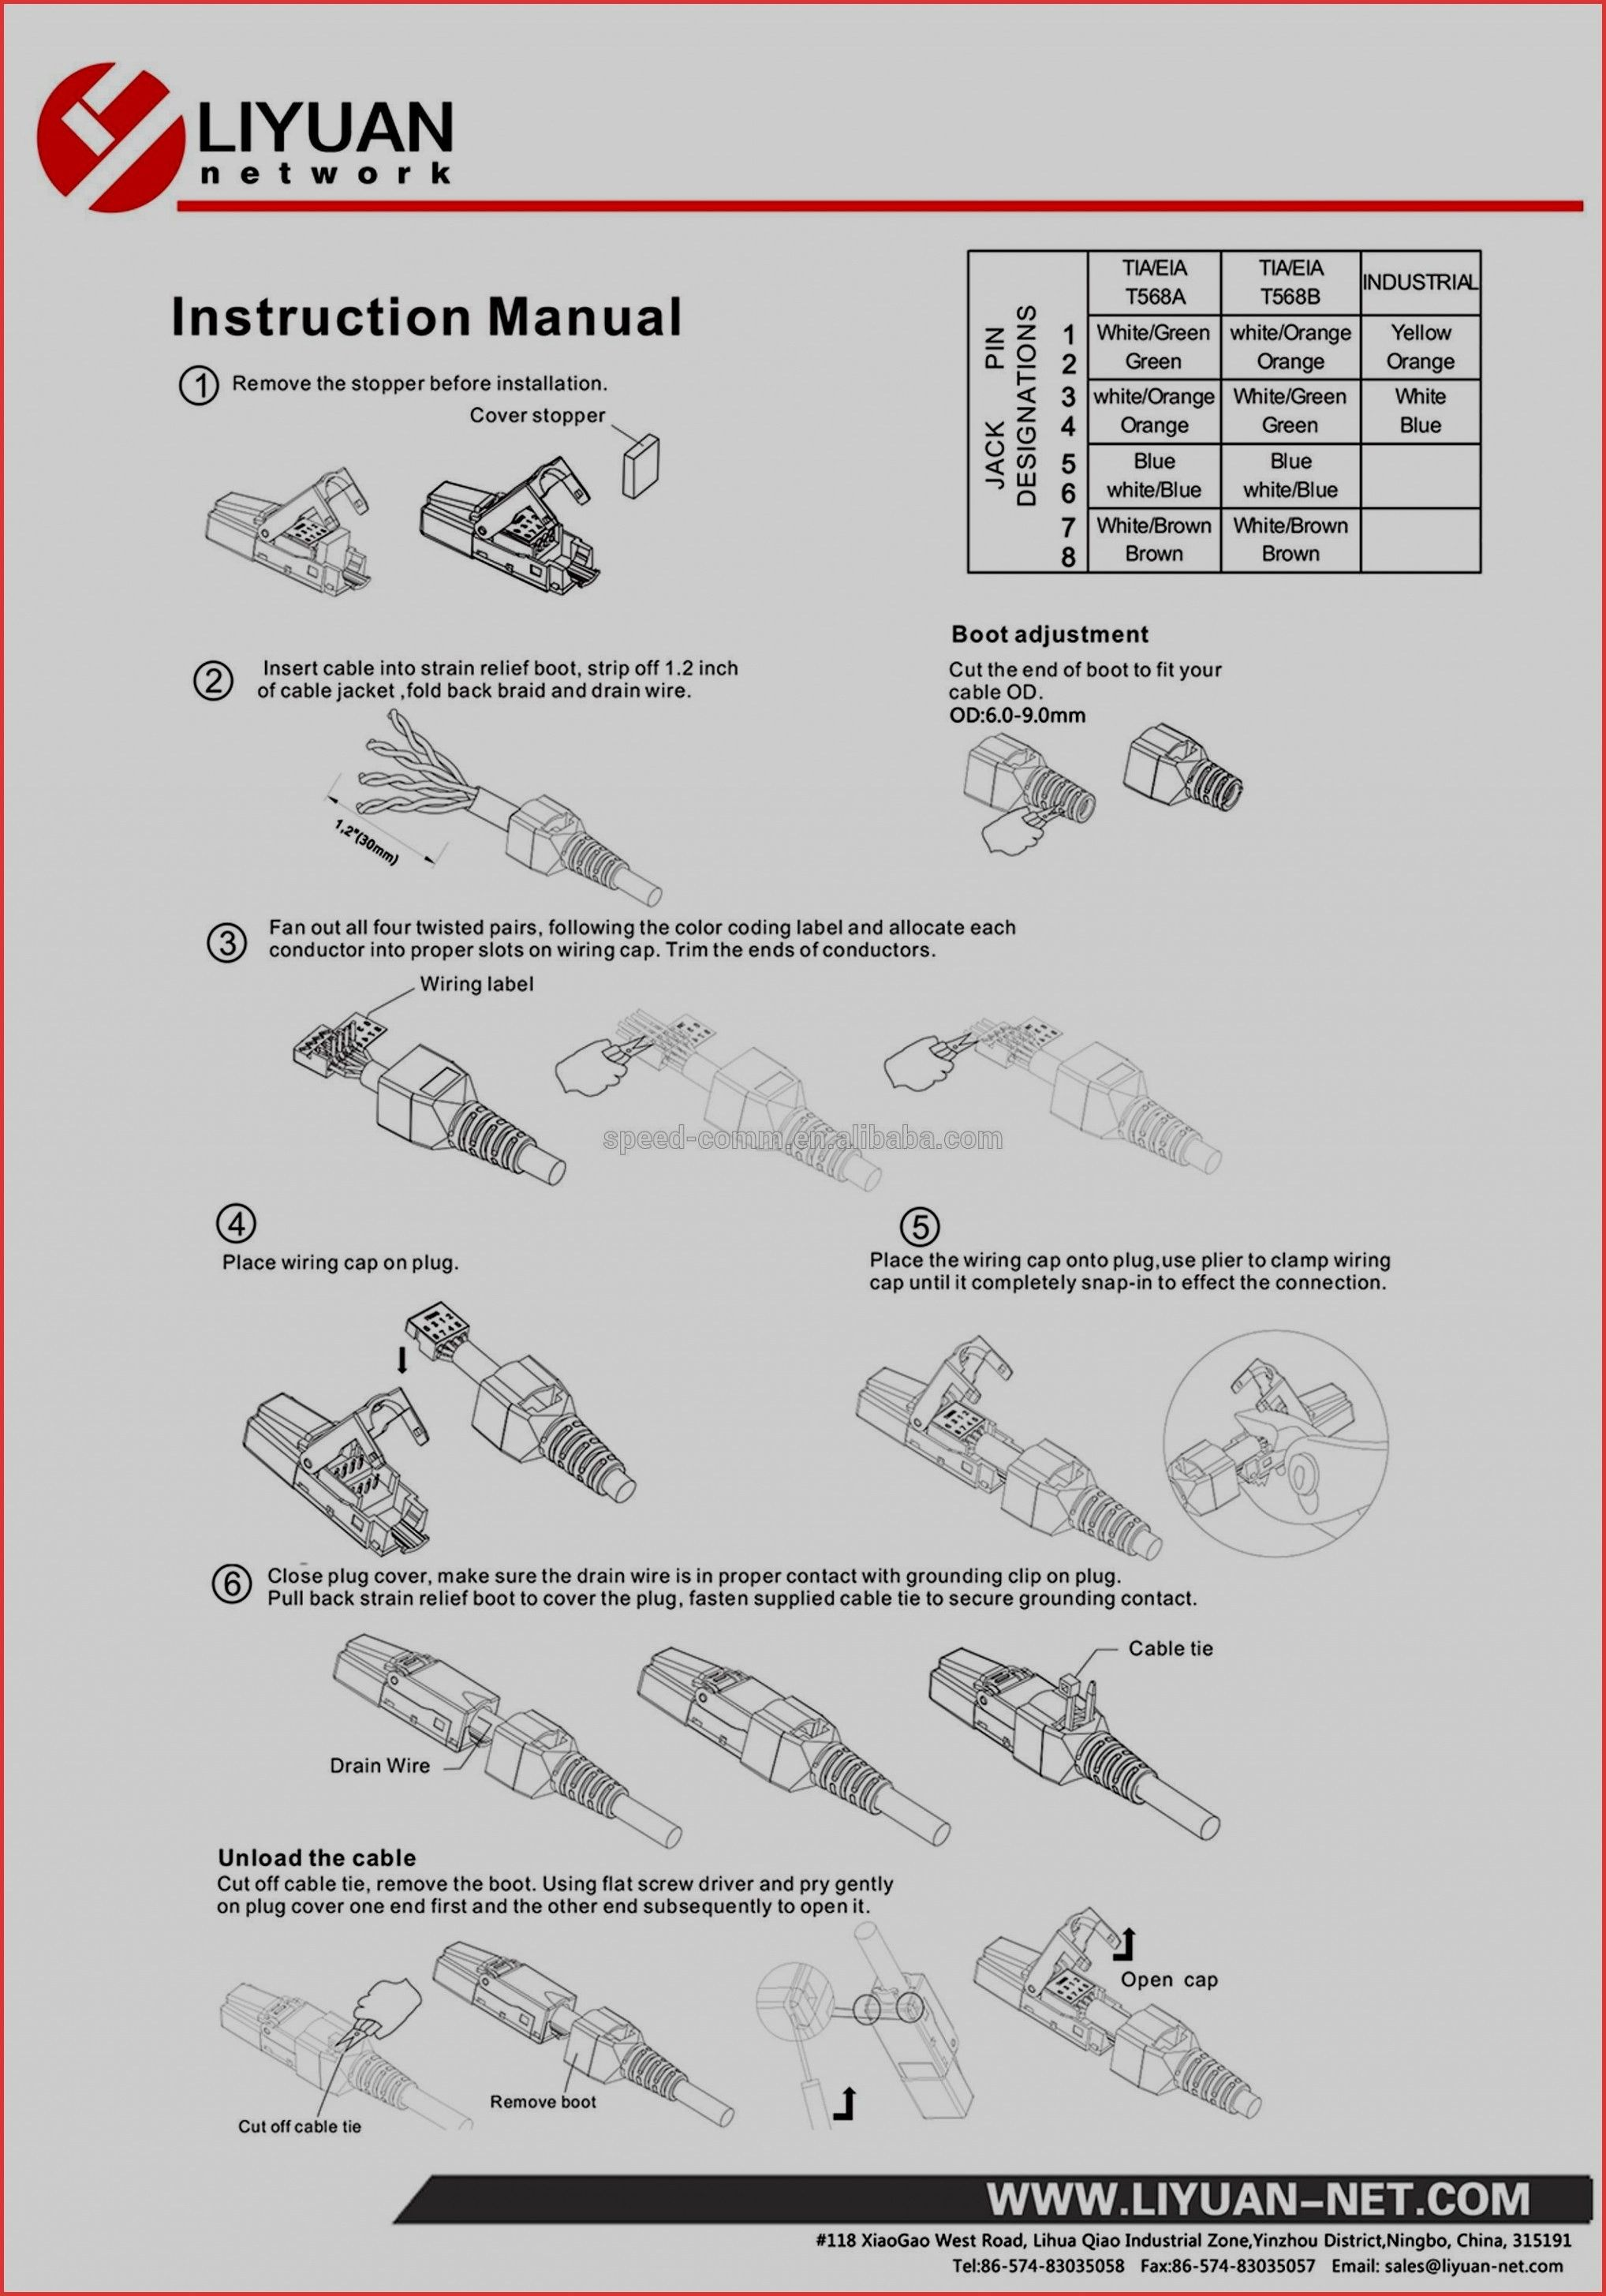 Unique Electric Brake Controller Wiring Diagram Australia Fall Coloring Pages Leaf Coloring Page Coloring Pages